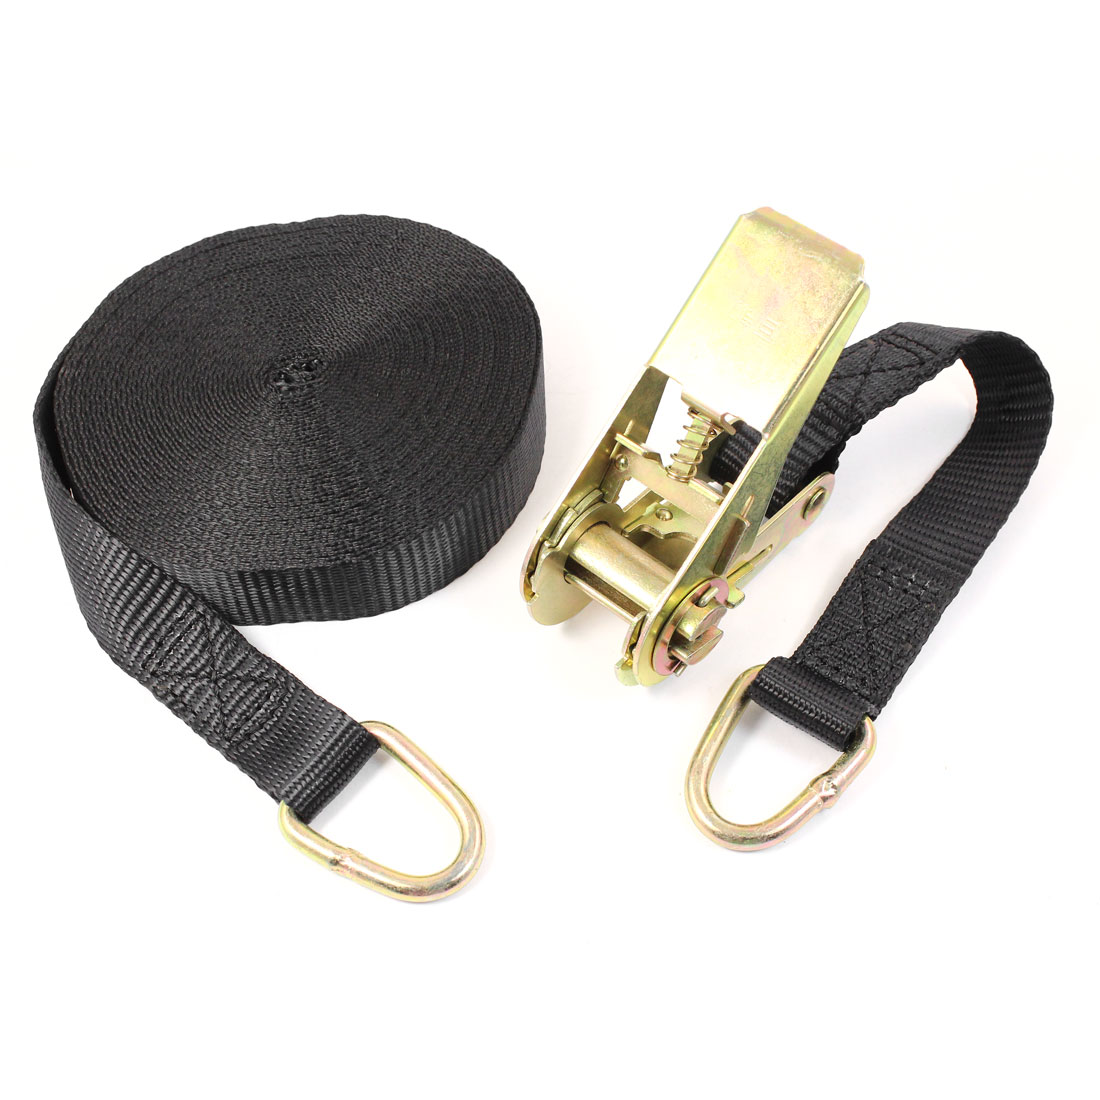 Metal D Shape Loop Cargo Binding Ratchet Tie Down Strap 10M 33ft Black